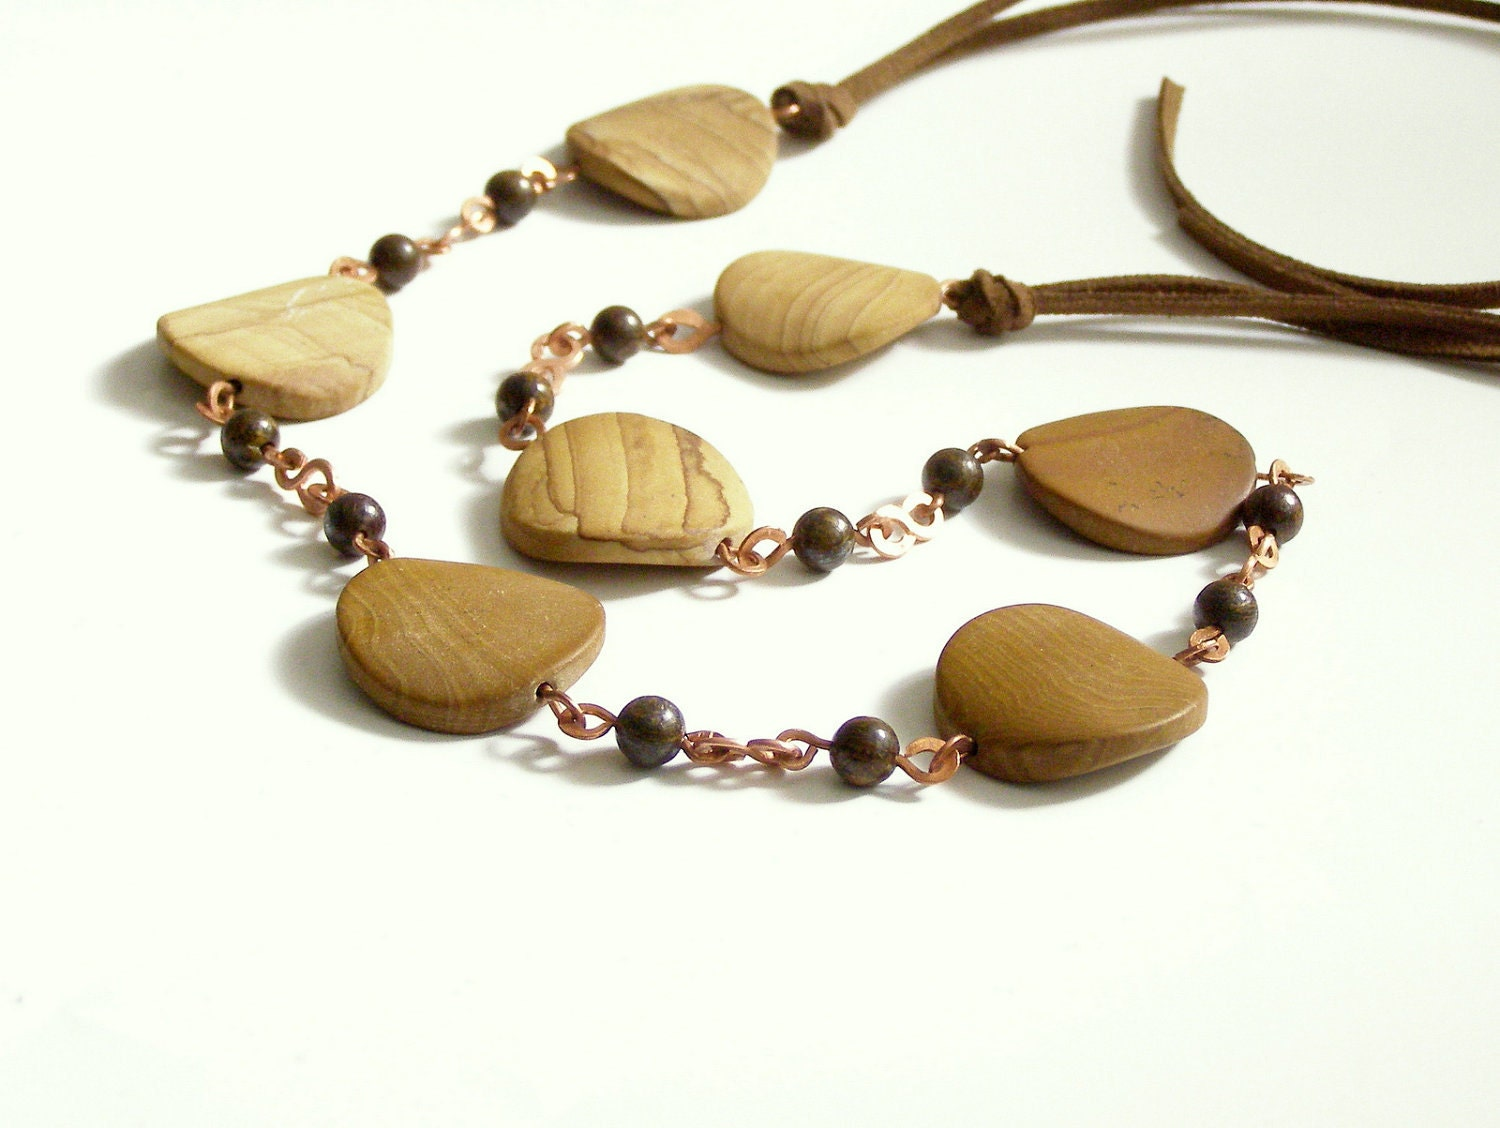 Wood Jasper, bronzite and copper elements handmade in Israel MADE TO ORDER